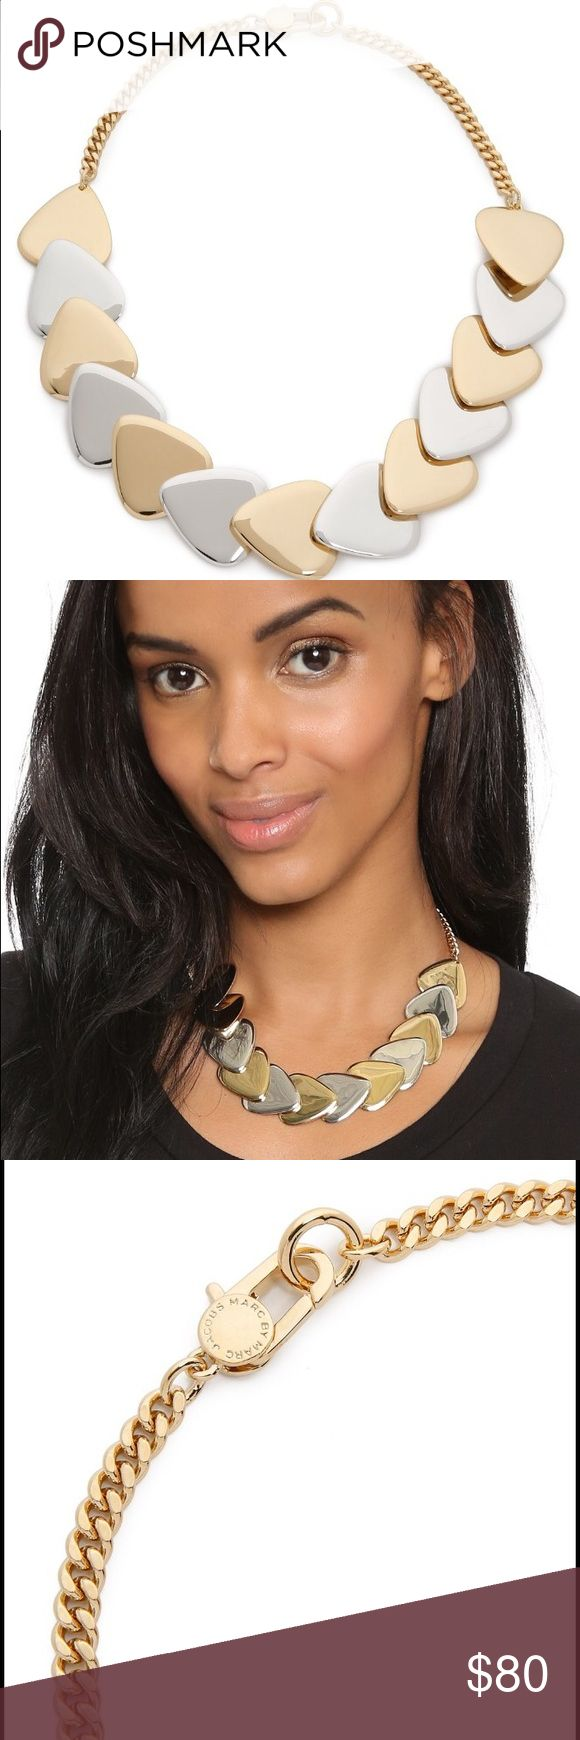 Marc by Marc Jacobs oro multi necklace Mixed-metal, plectrum-shaped links compose this Marc by Marc Jacobs choker necklace. Lobster-claw clasp.  Gold plate / rhodium plate. Imported, China.  Measurements Length: 16.75in / 42.5cm Marc by Marc Jacobs Jewelry Necklaces